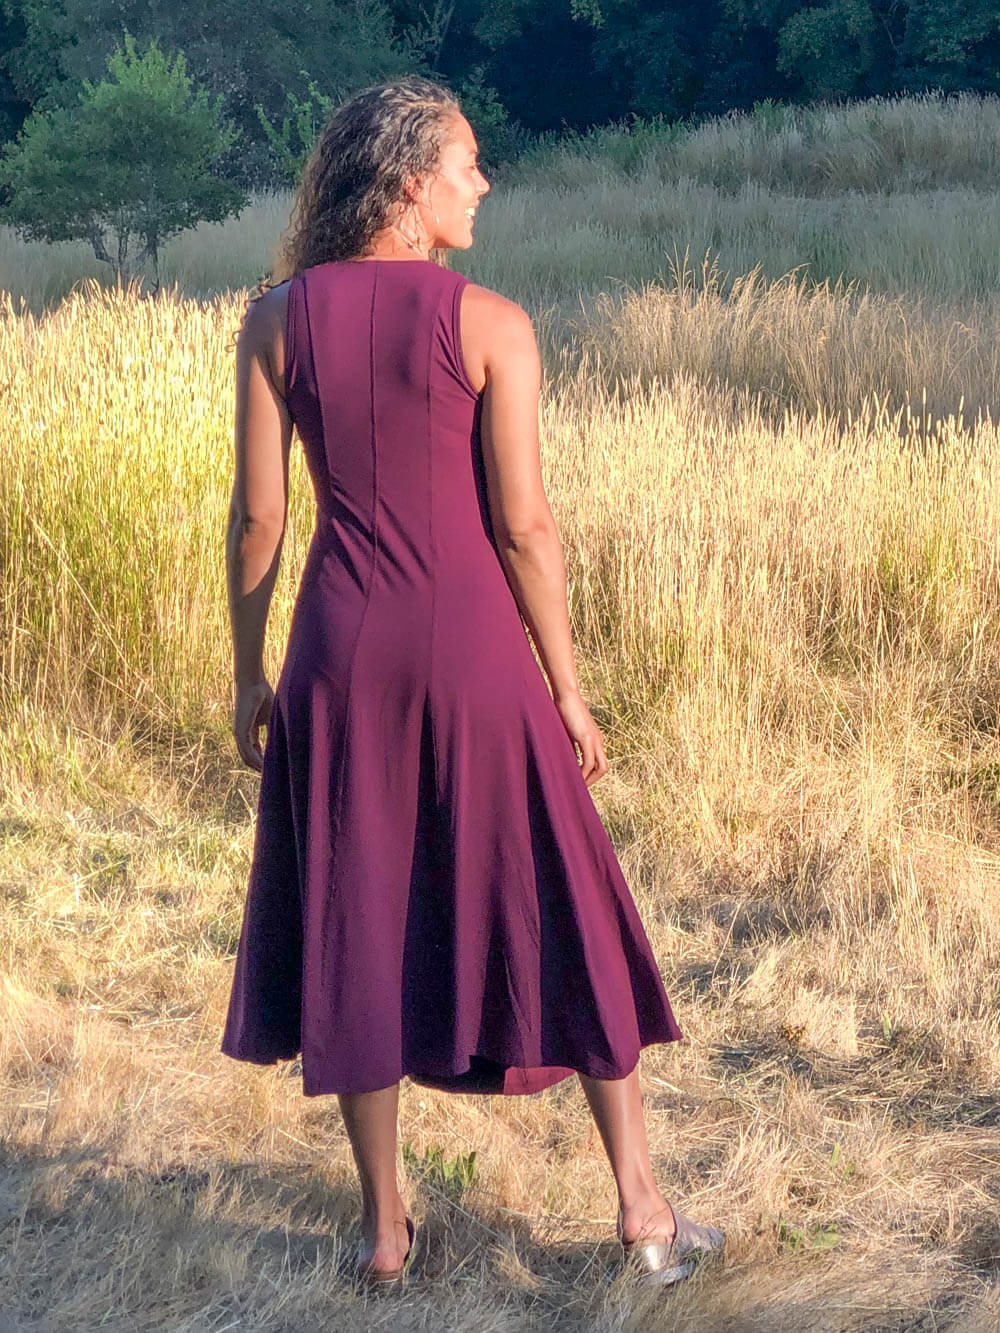 women's plant based rayon jersey stretchy purple v-neck midi dress with raised detailed stitching #color_jam